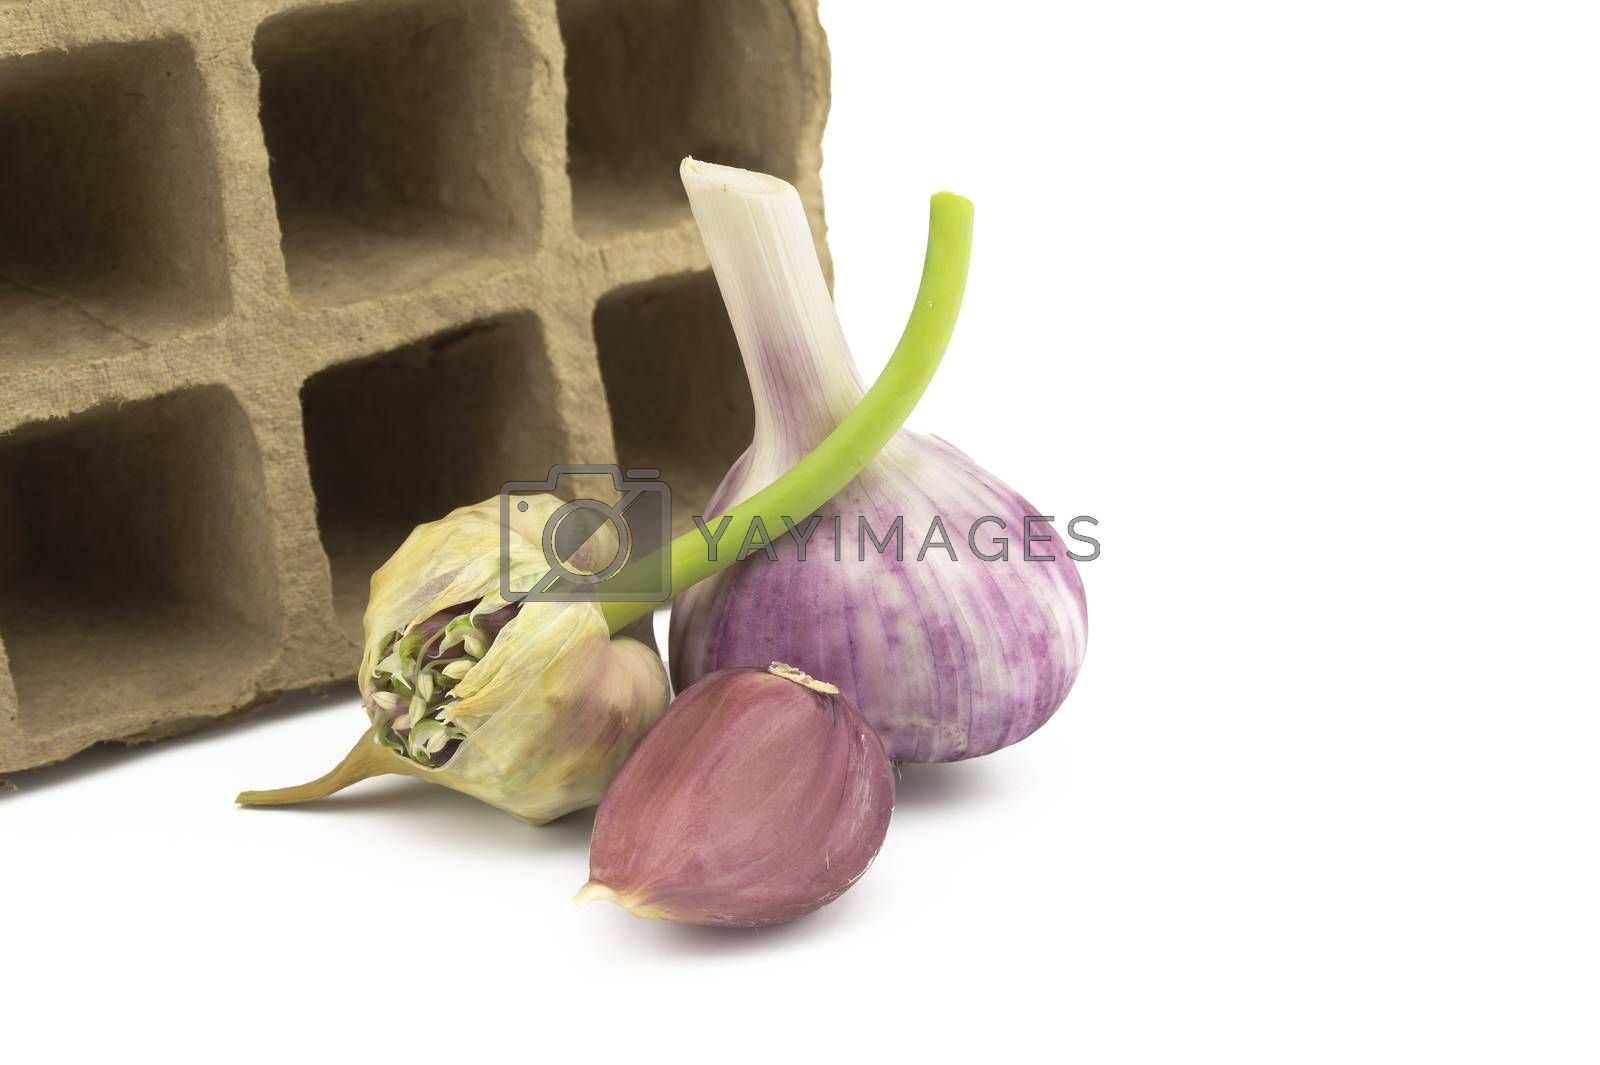 Garlic bulbs, cloves and seed head near cardboard seed tray over white with copy space in a concept of planting, growing, and harvesting garlic